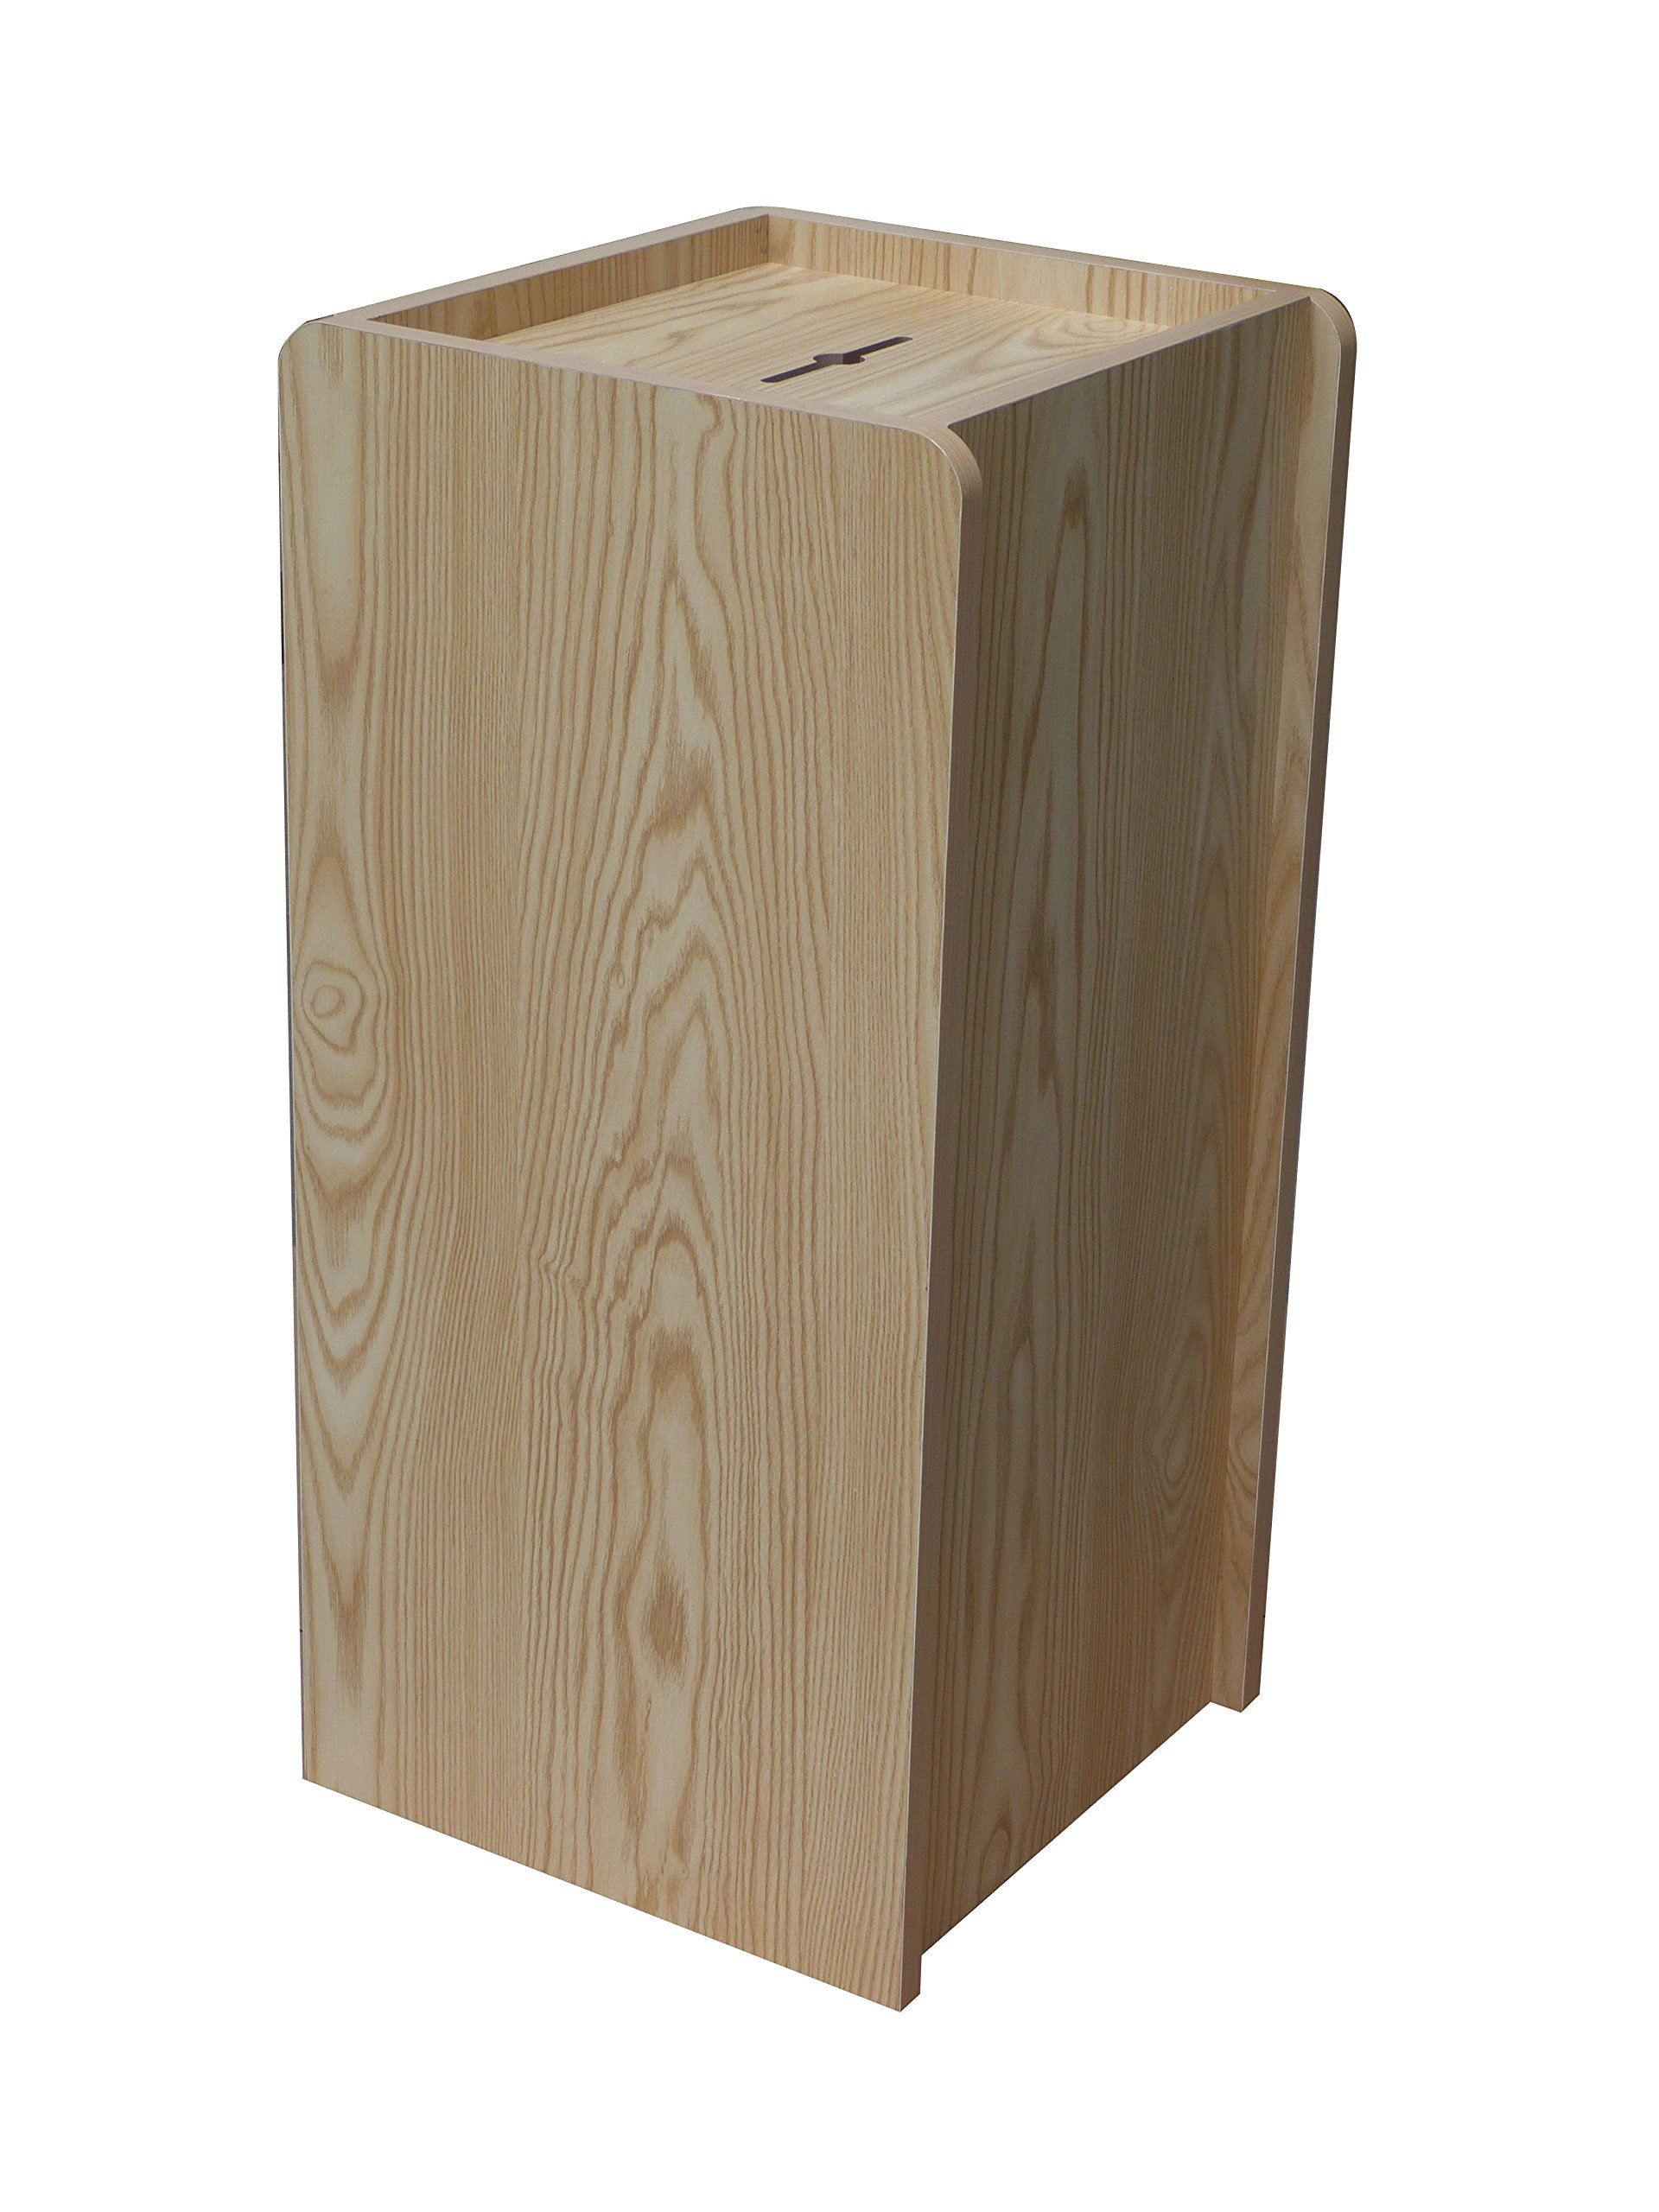 Fixture Displays Wood (MDF Veneer) Donation Box Tithing Box Fundraising Stand 13155 13155